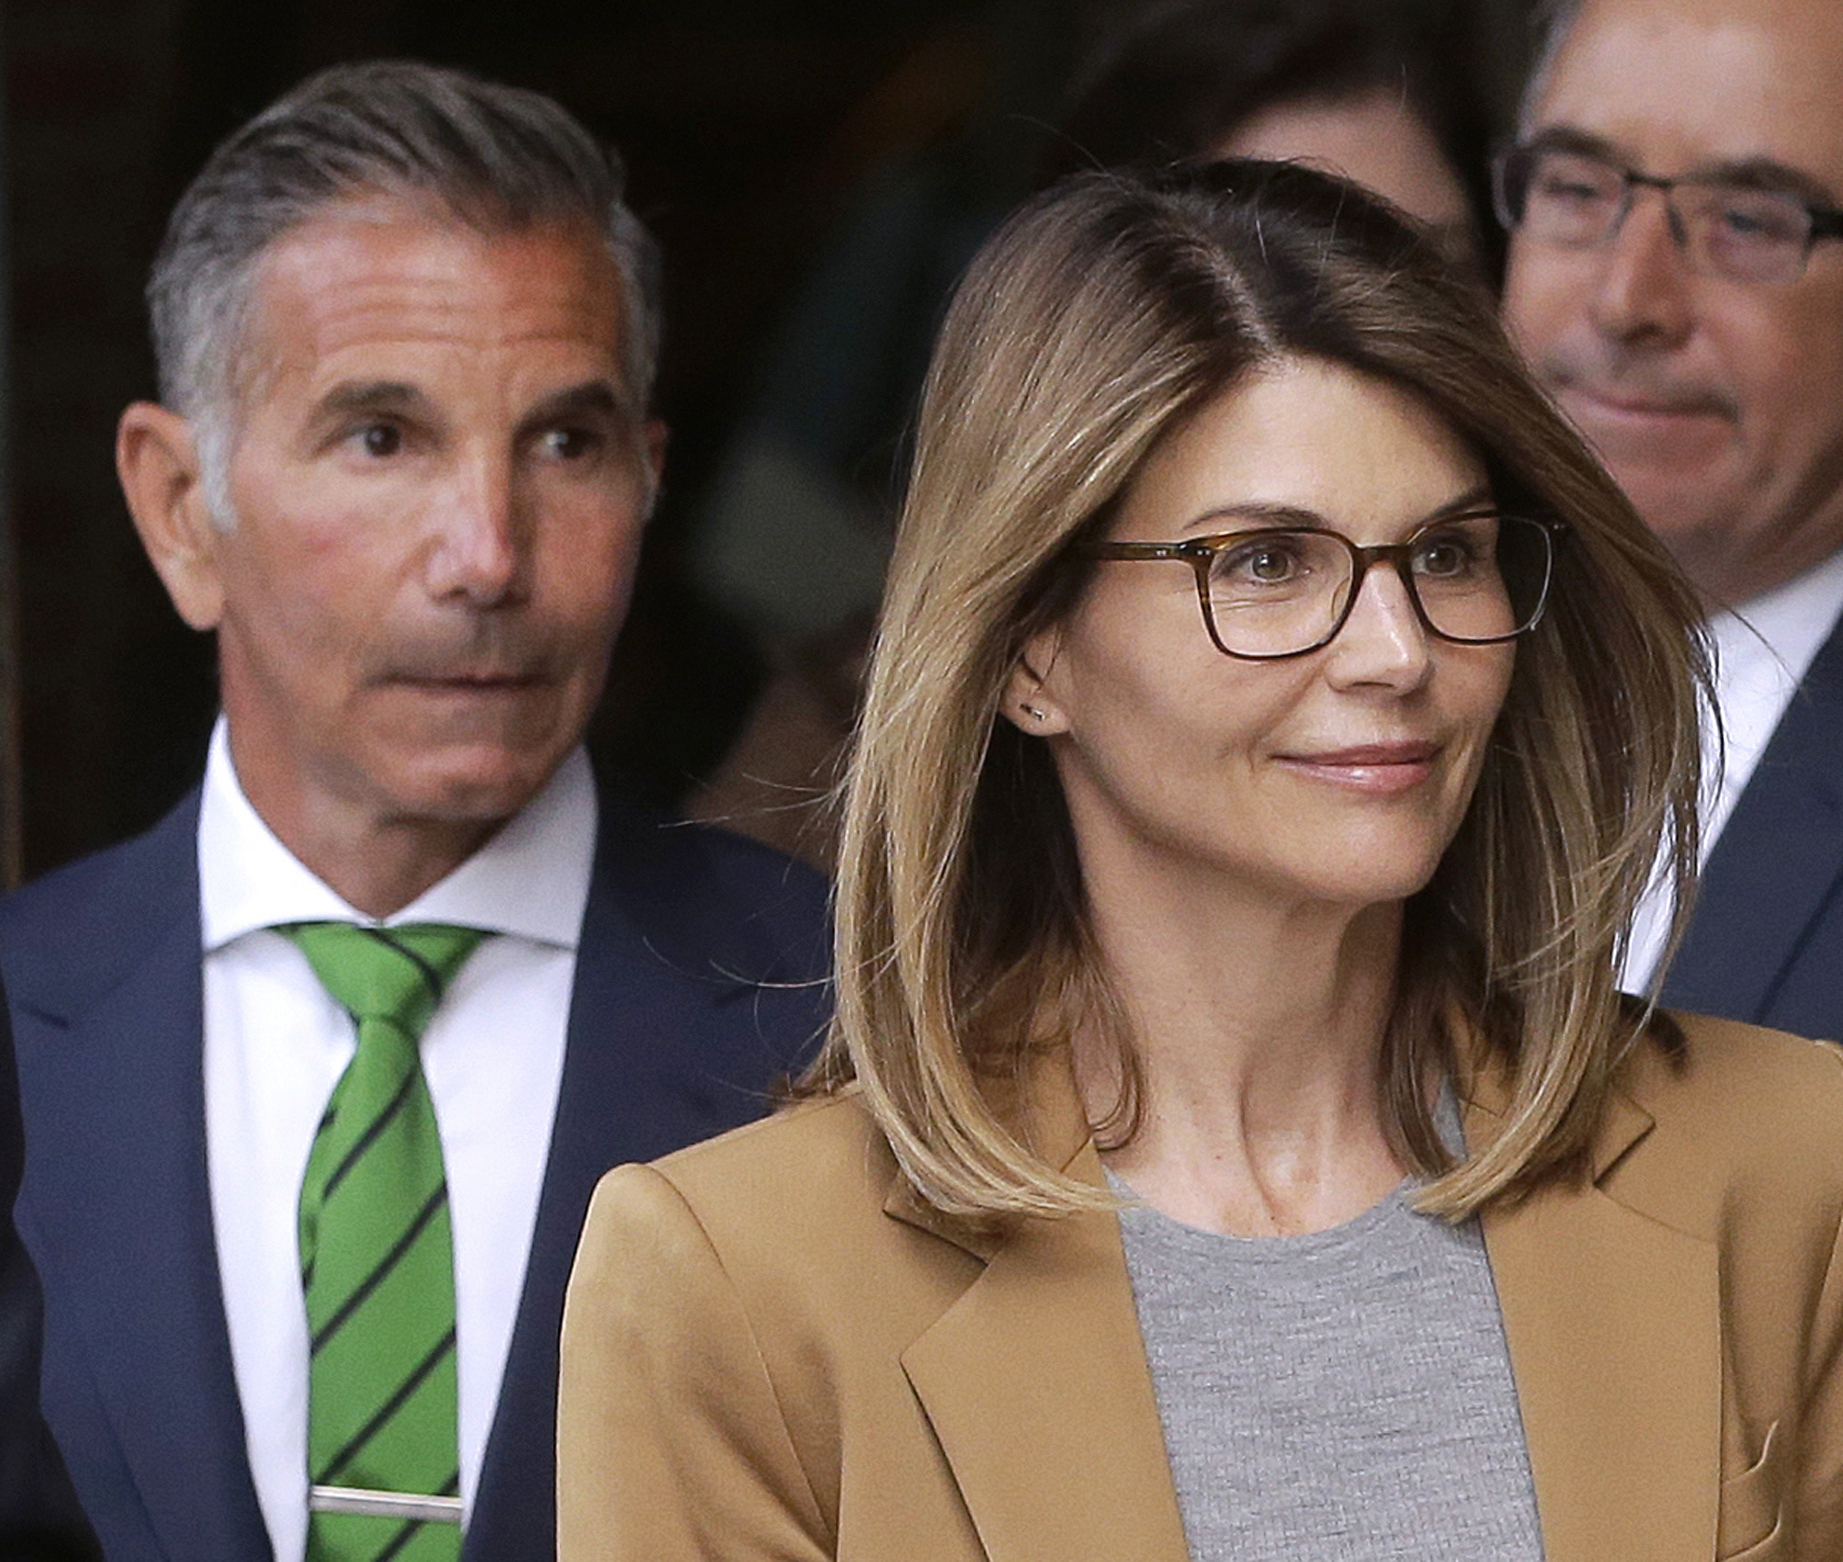 Actress Lori Loughlin Fashion Designer Husband To Fight New Charges In Admissions Case